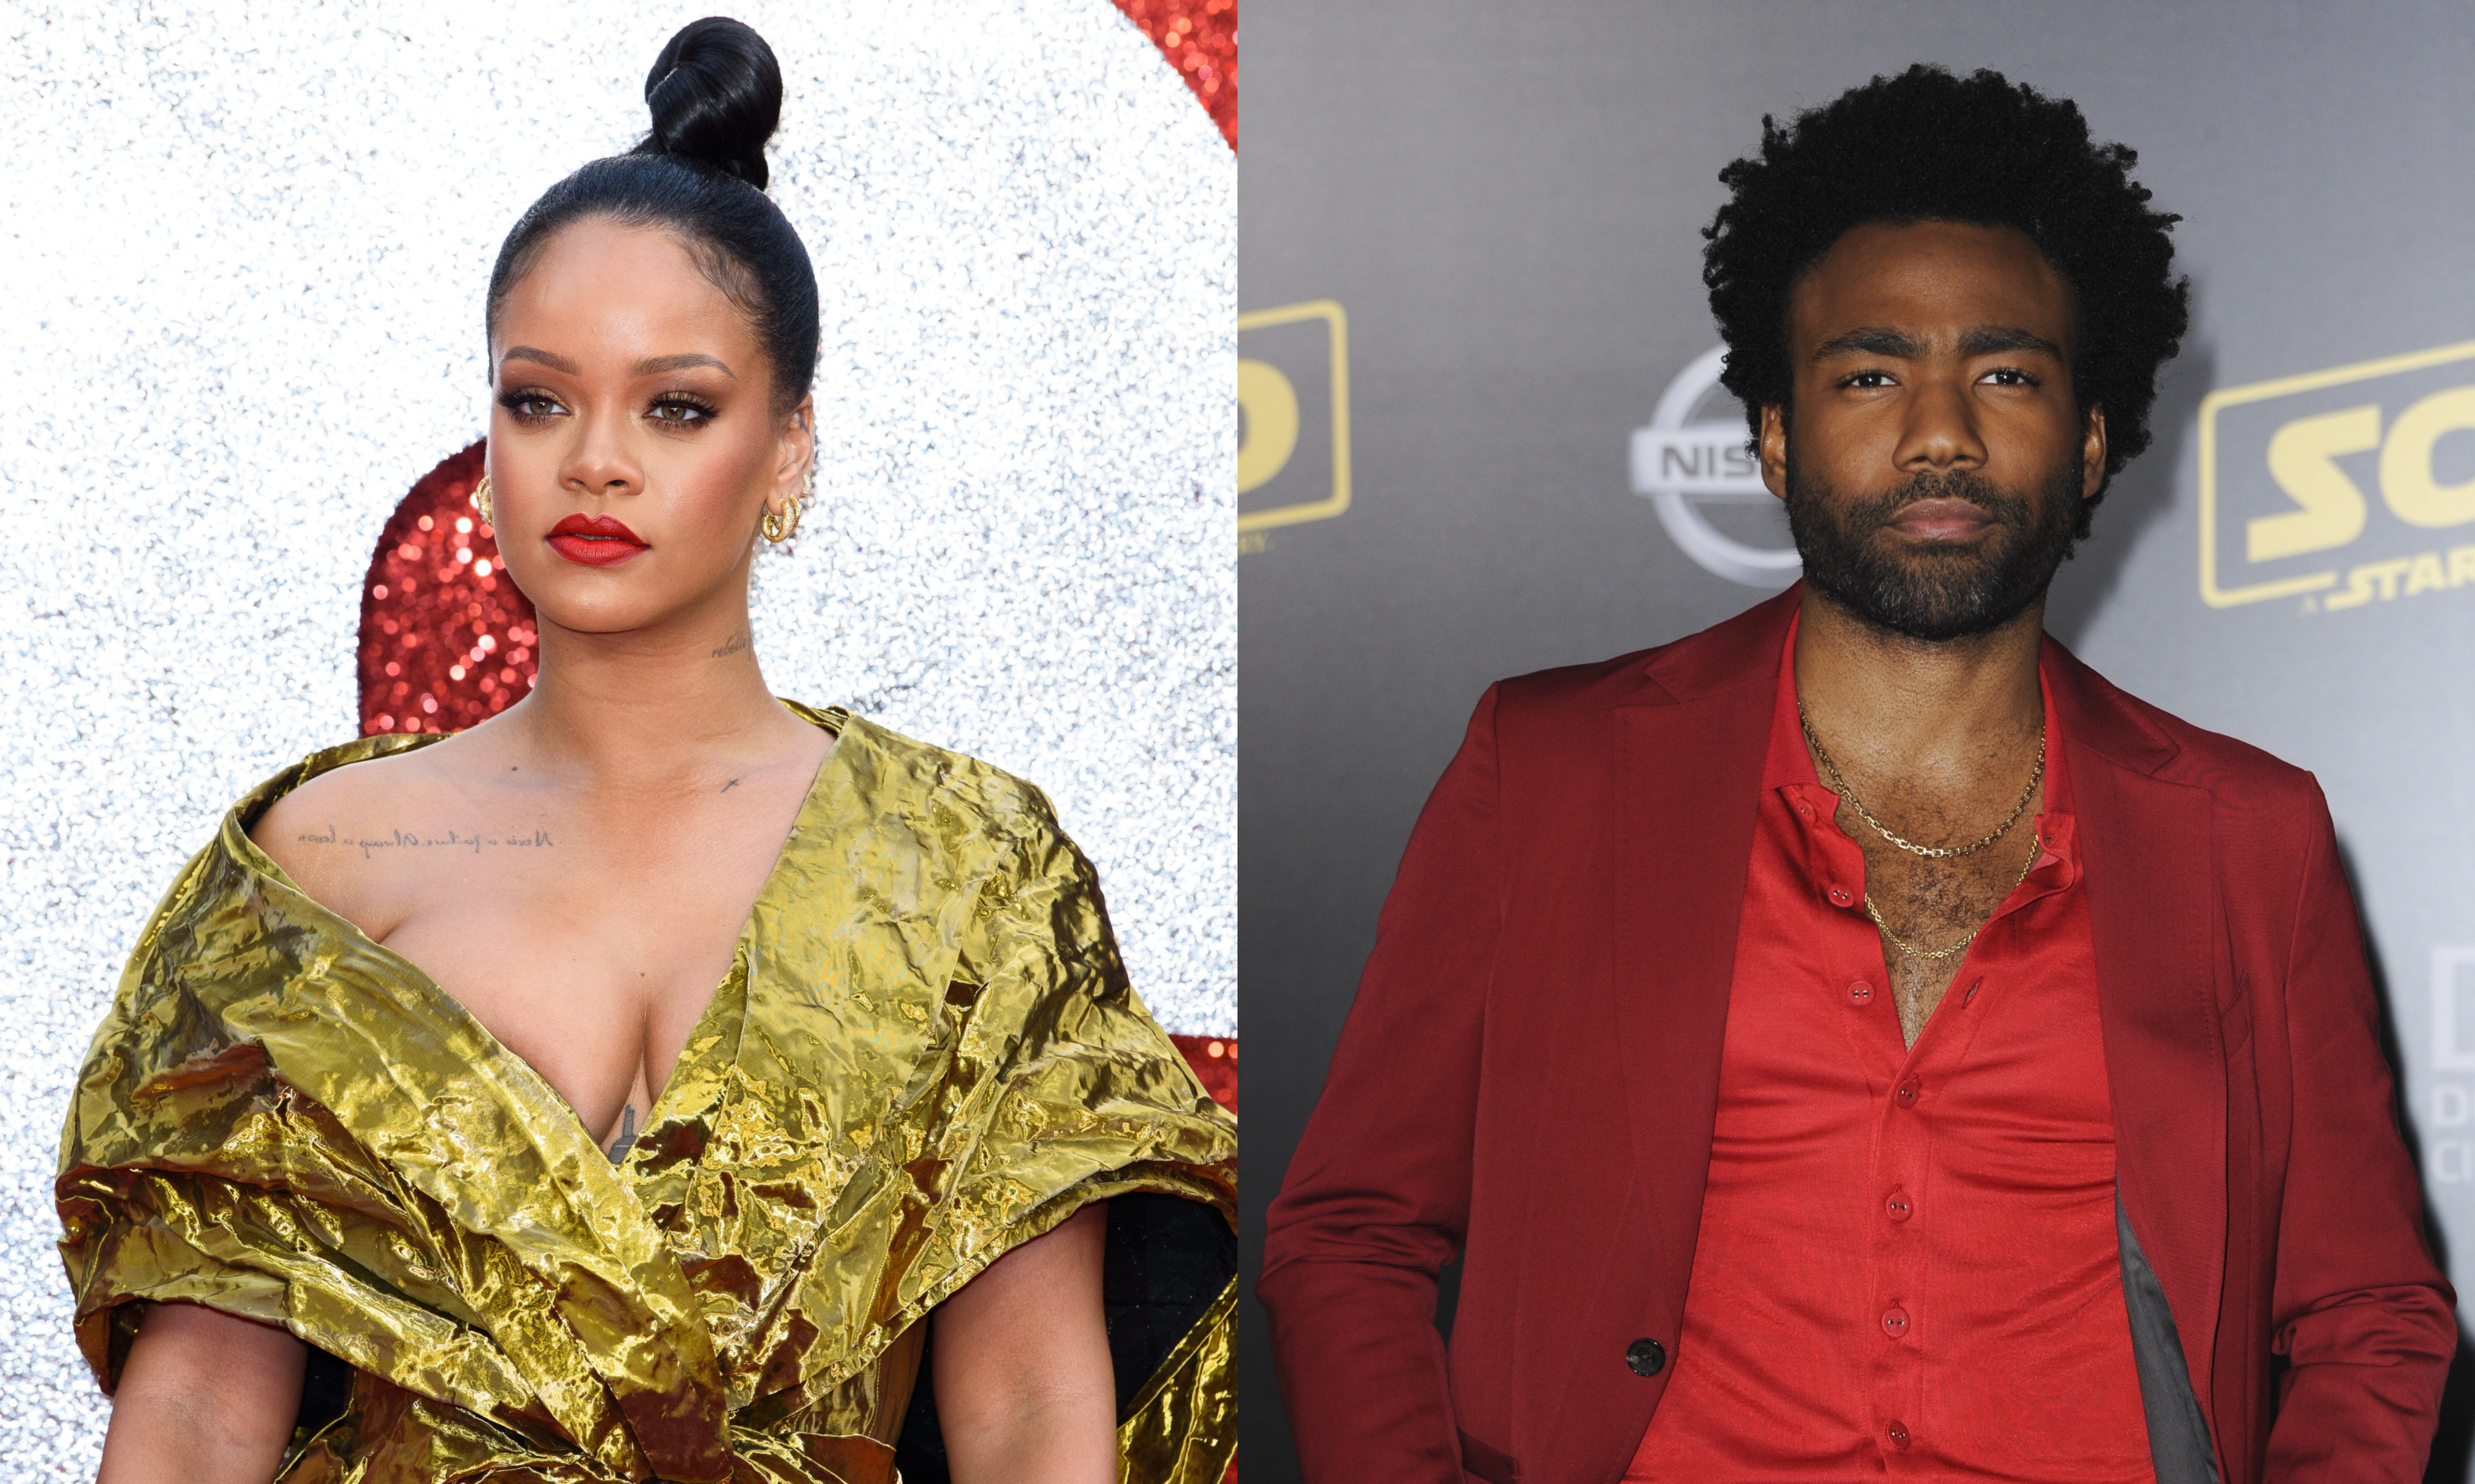 What are Rihanna and Donald Glover up to? (Photo: WENN)